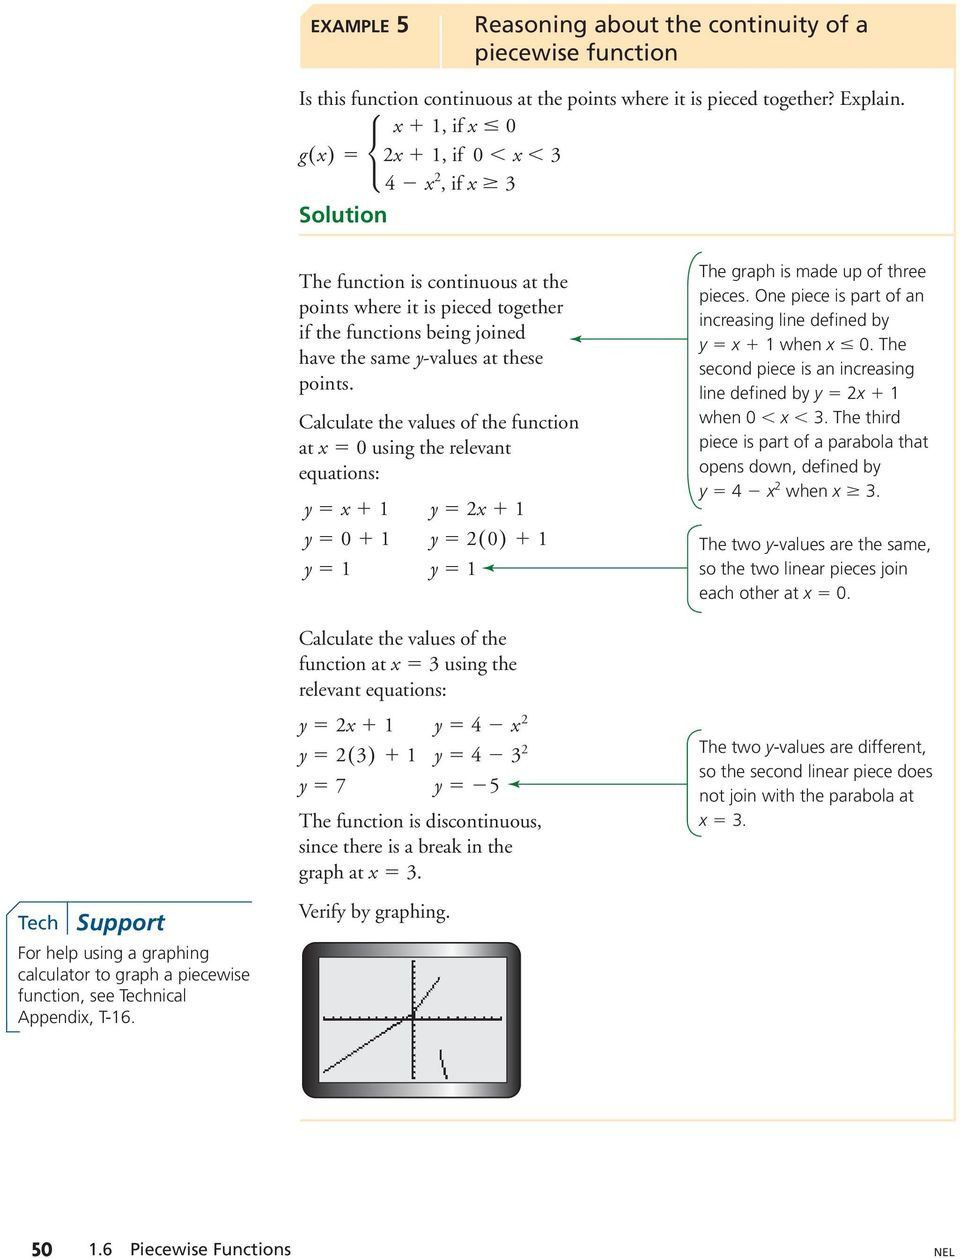 Piecewise Functions Word Problems Worksheet 1 6 Piecewise Functions Learn About the Math Representing